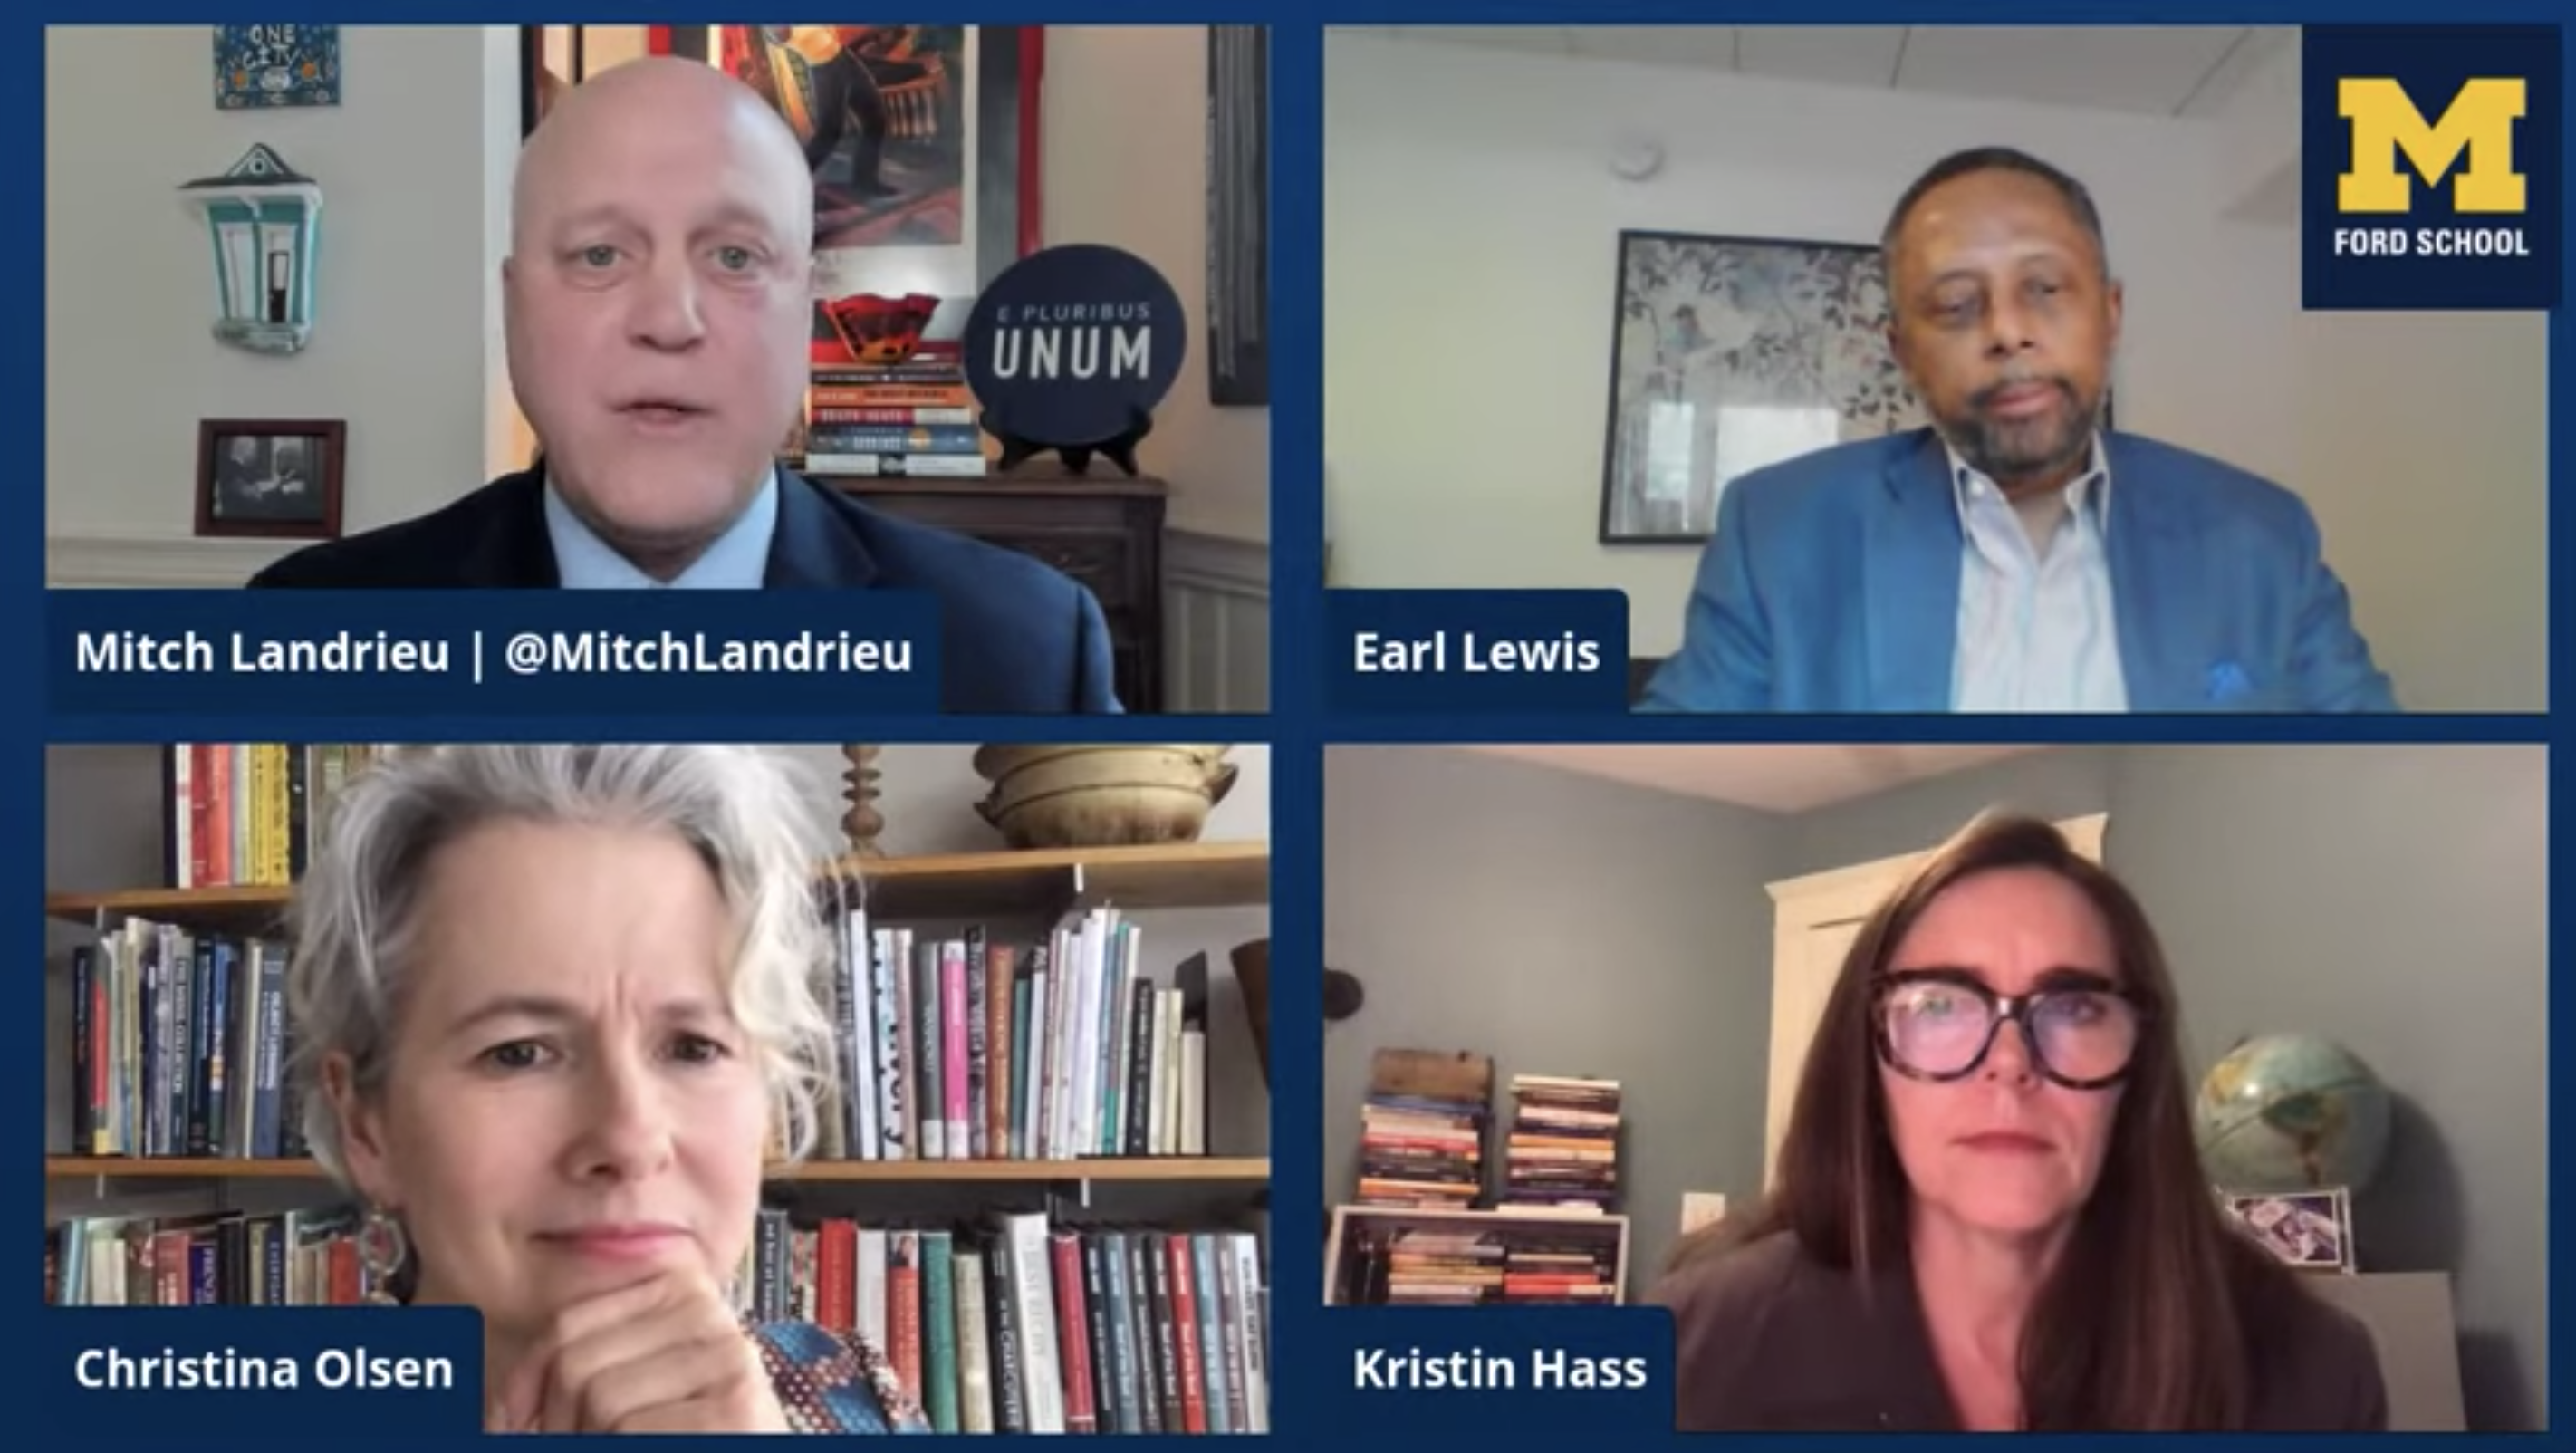 Mitch Landrieu, Earl Lewis, Christina Olsen, and Kristen Hass speak to one another on a Zoom screen.